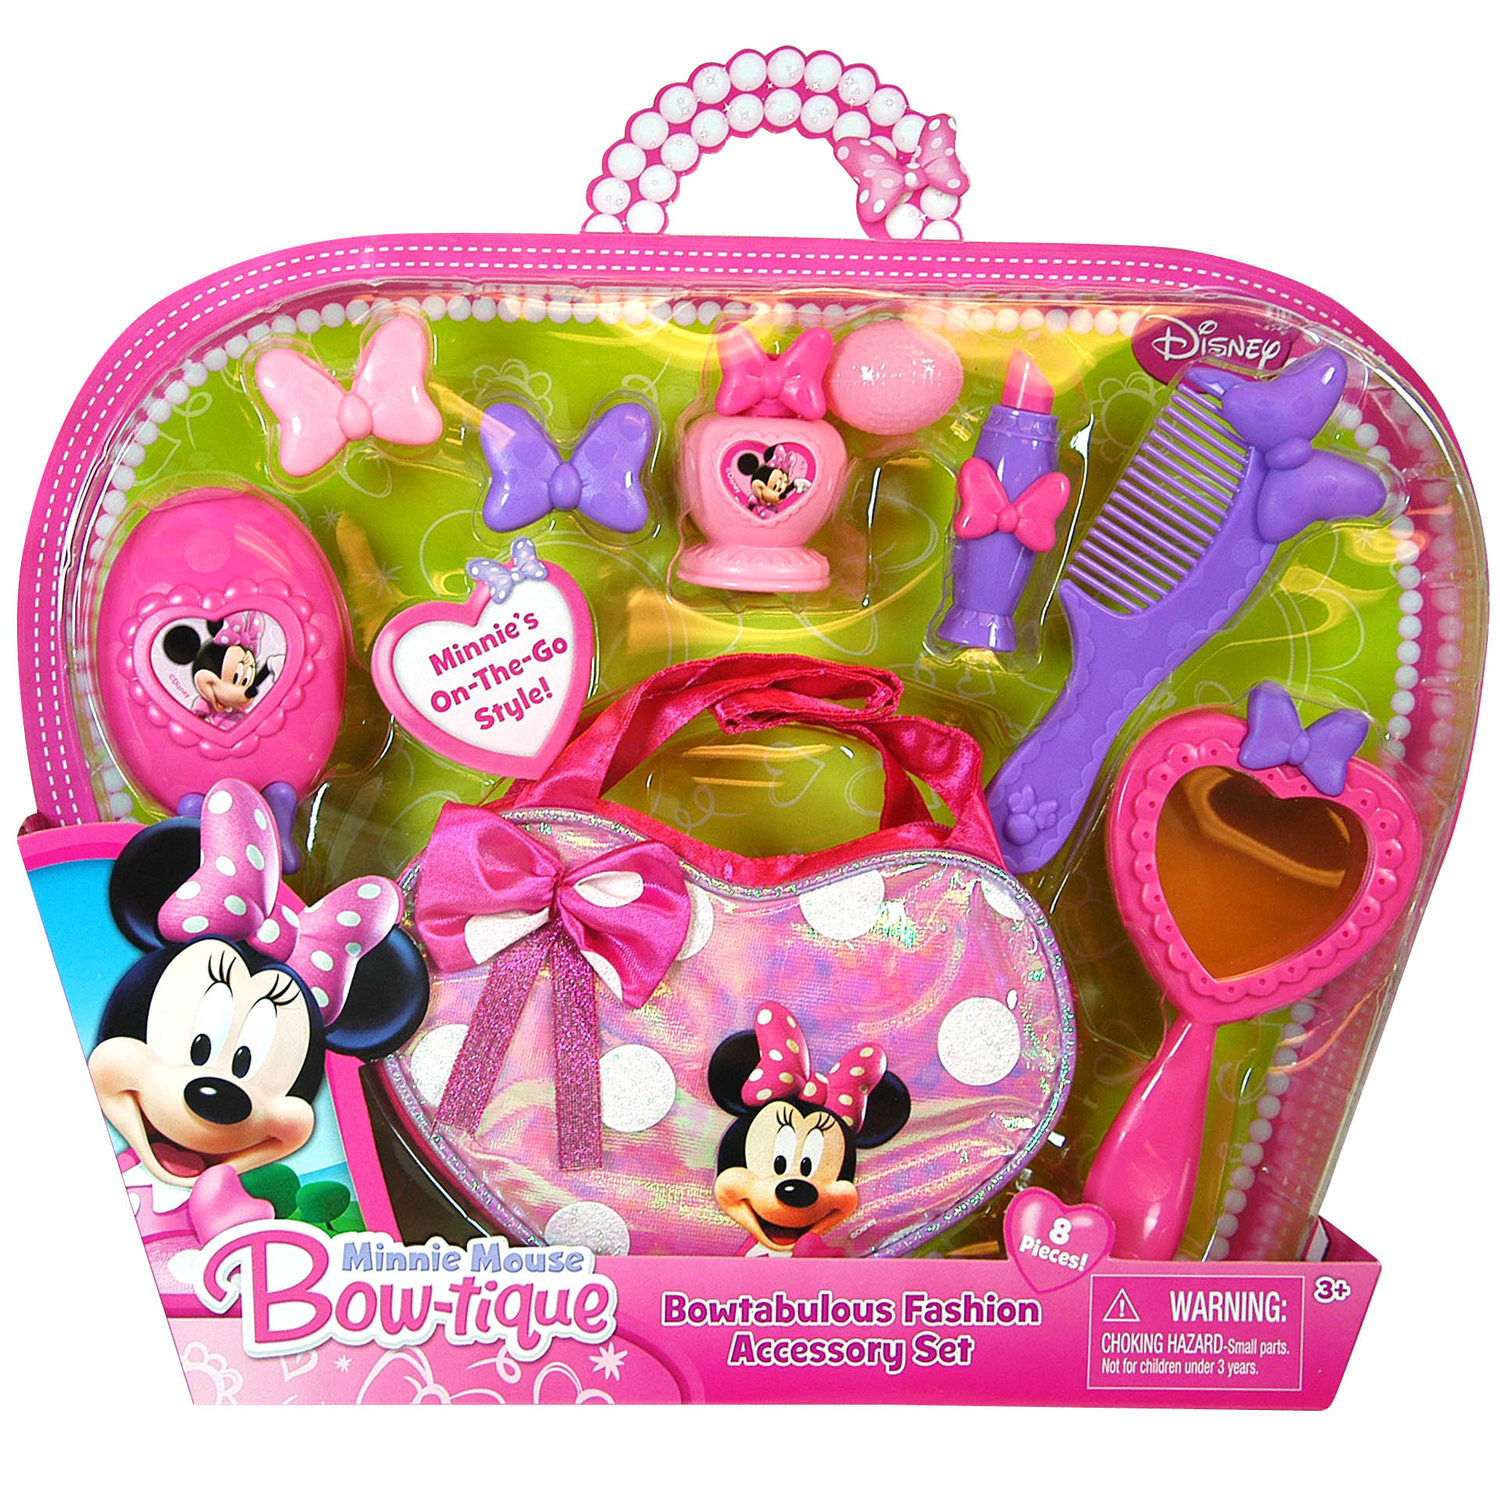 Disney 8pc Disney Minnie Mouse Girls Hair Accessory Fashion Set at Sears.com